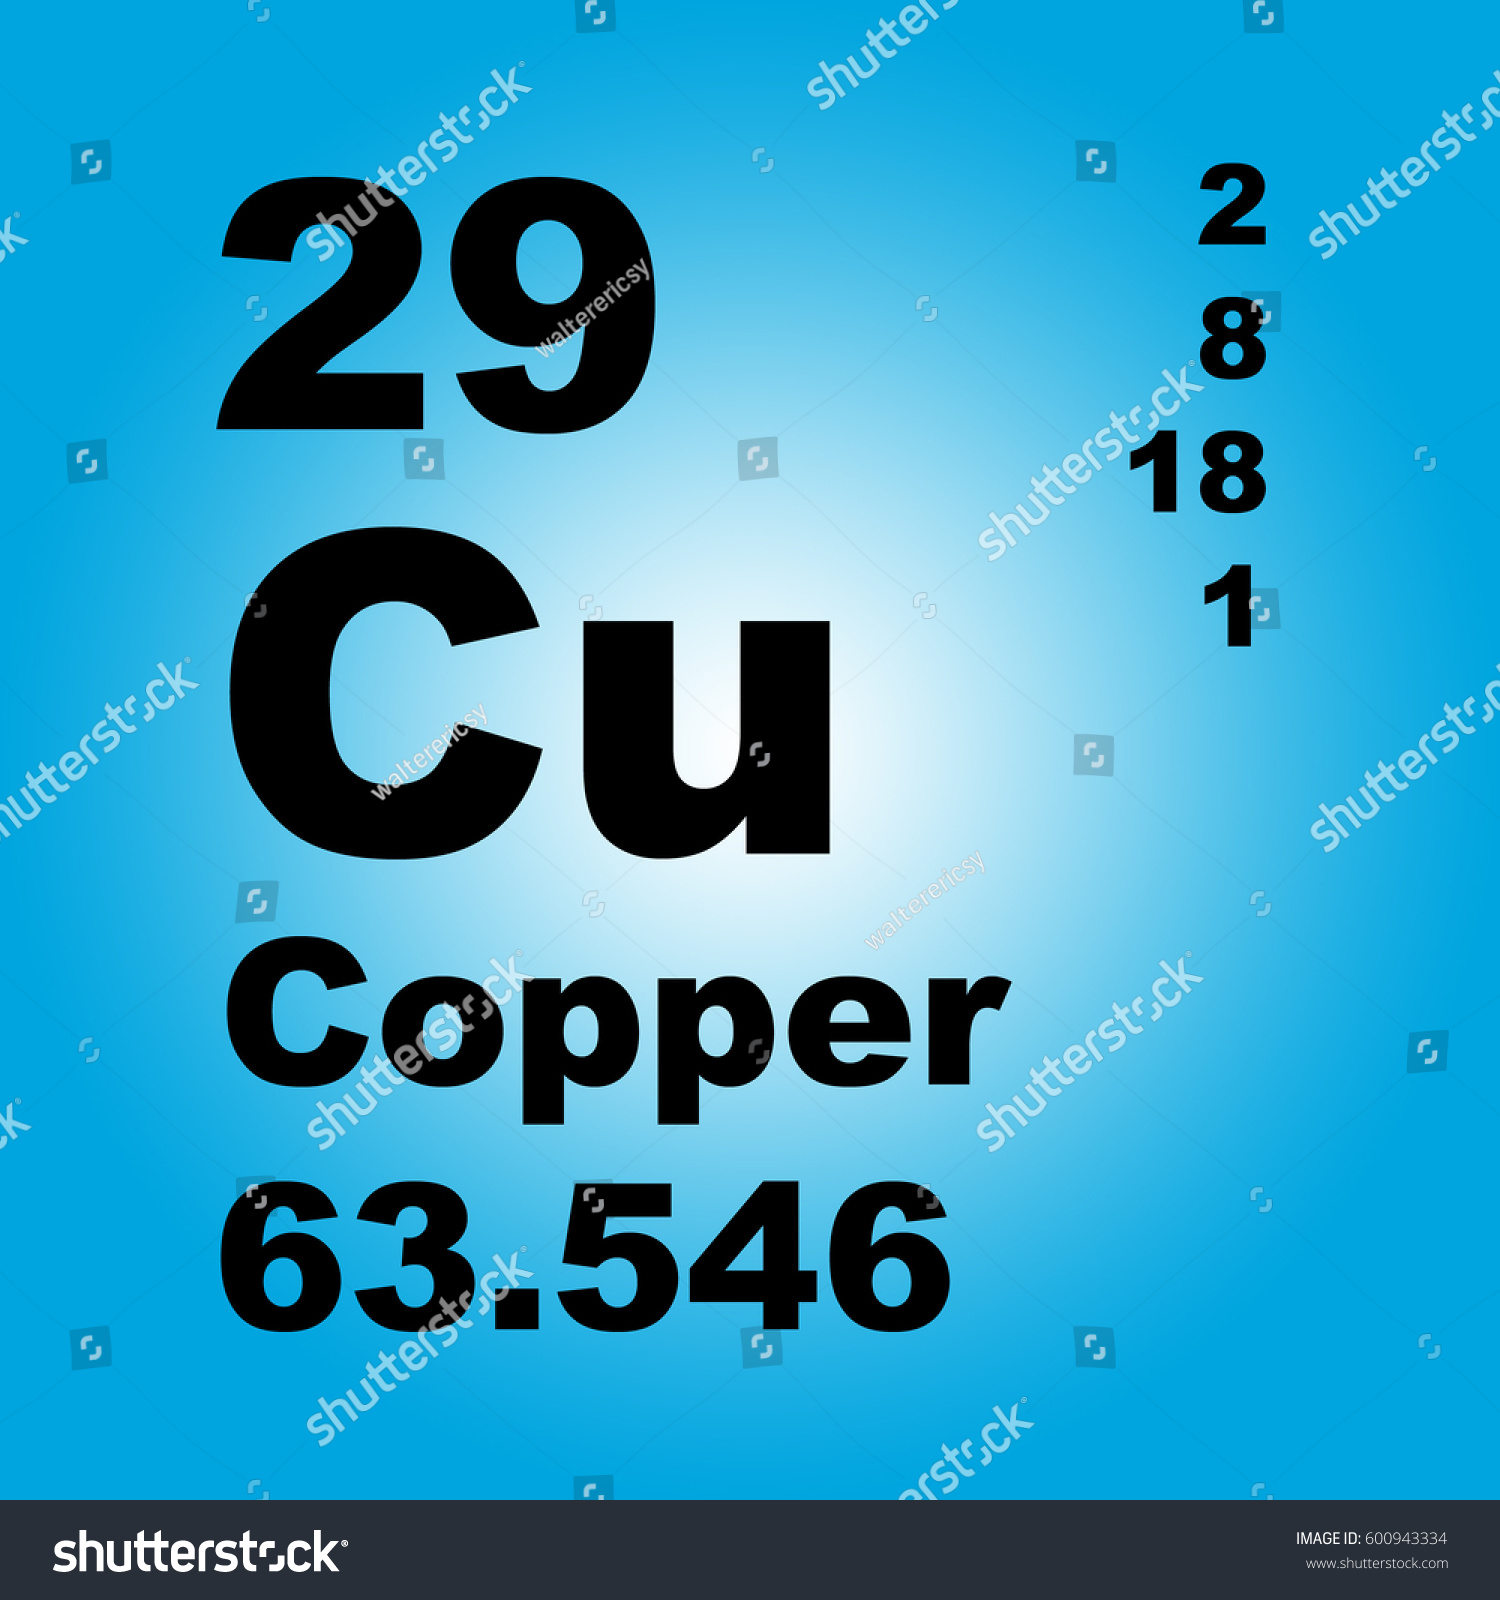 Copper periodic table elements stock illustration 600943334 copper periodic table of elements gamestrikefo Choice Image